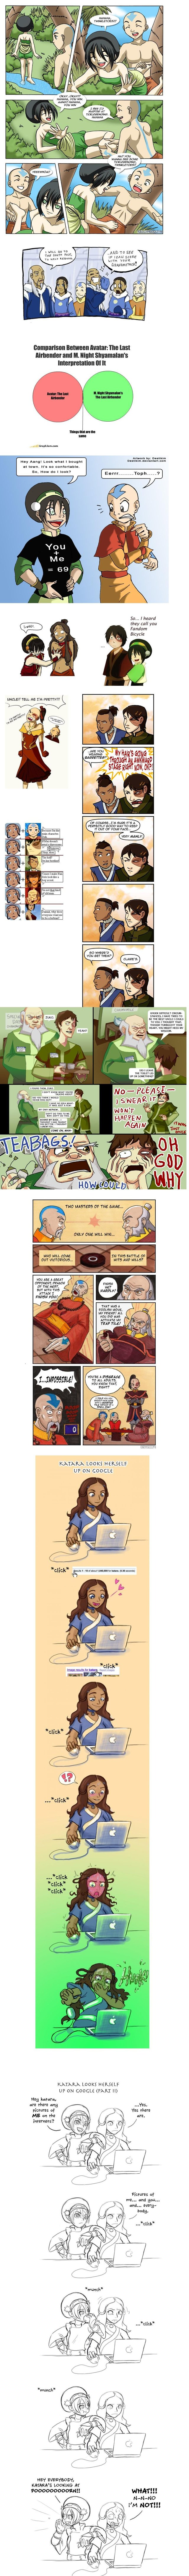 avatar aang hentai comics pictures large funny avatar